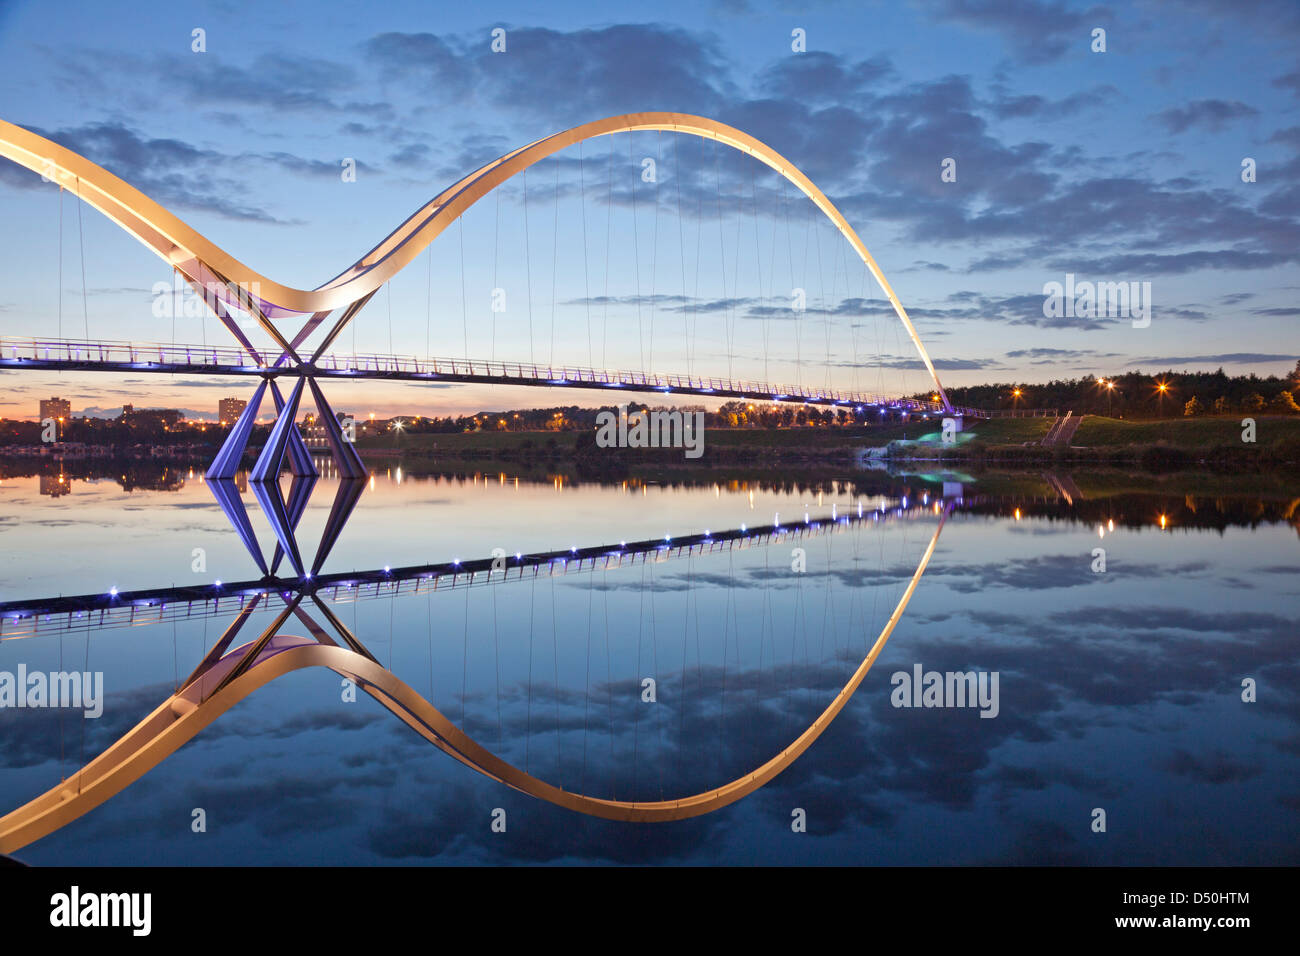 The Infinity bridge, Stockton-on-Tees, reflected in the river Tees at sunset. - Stock Image